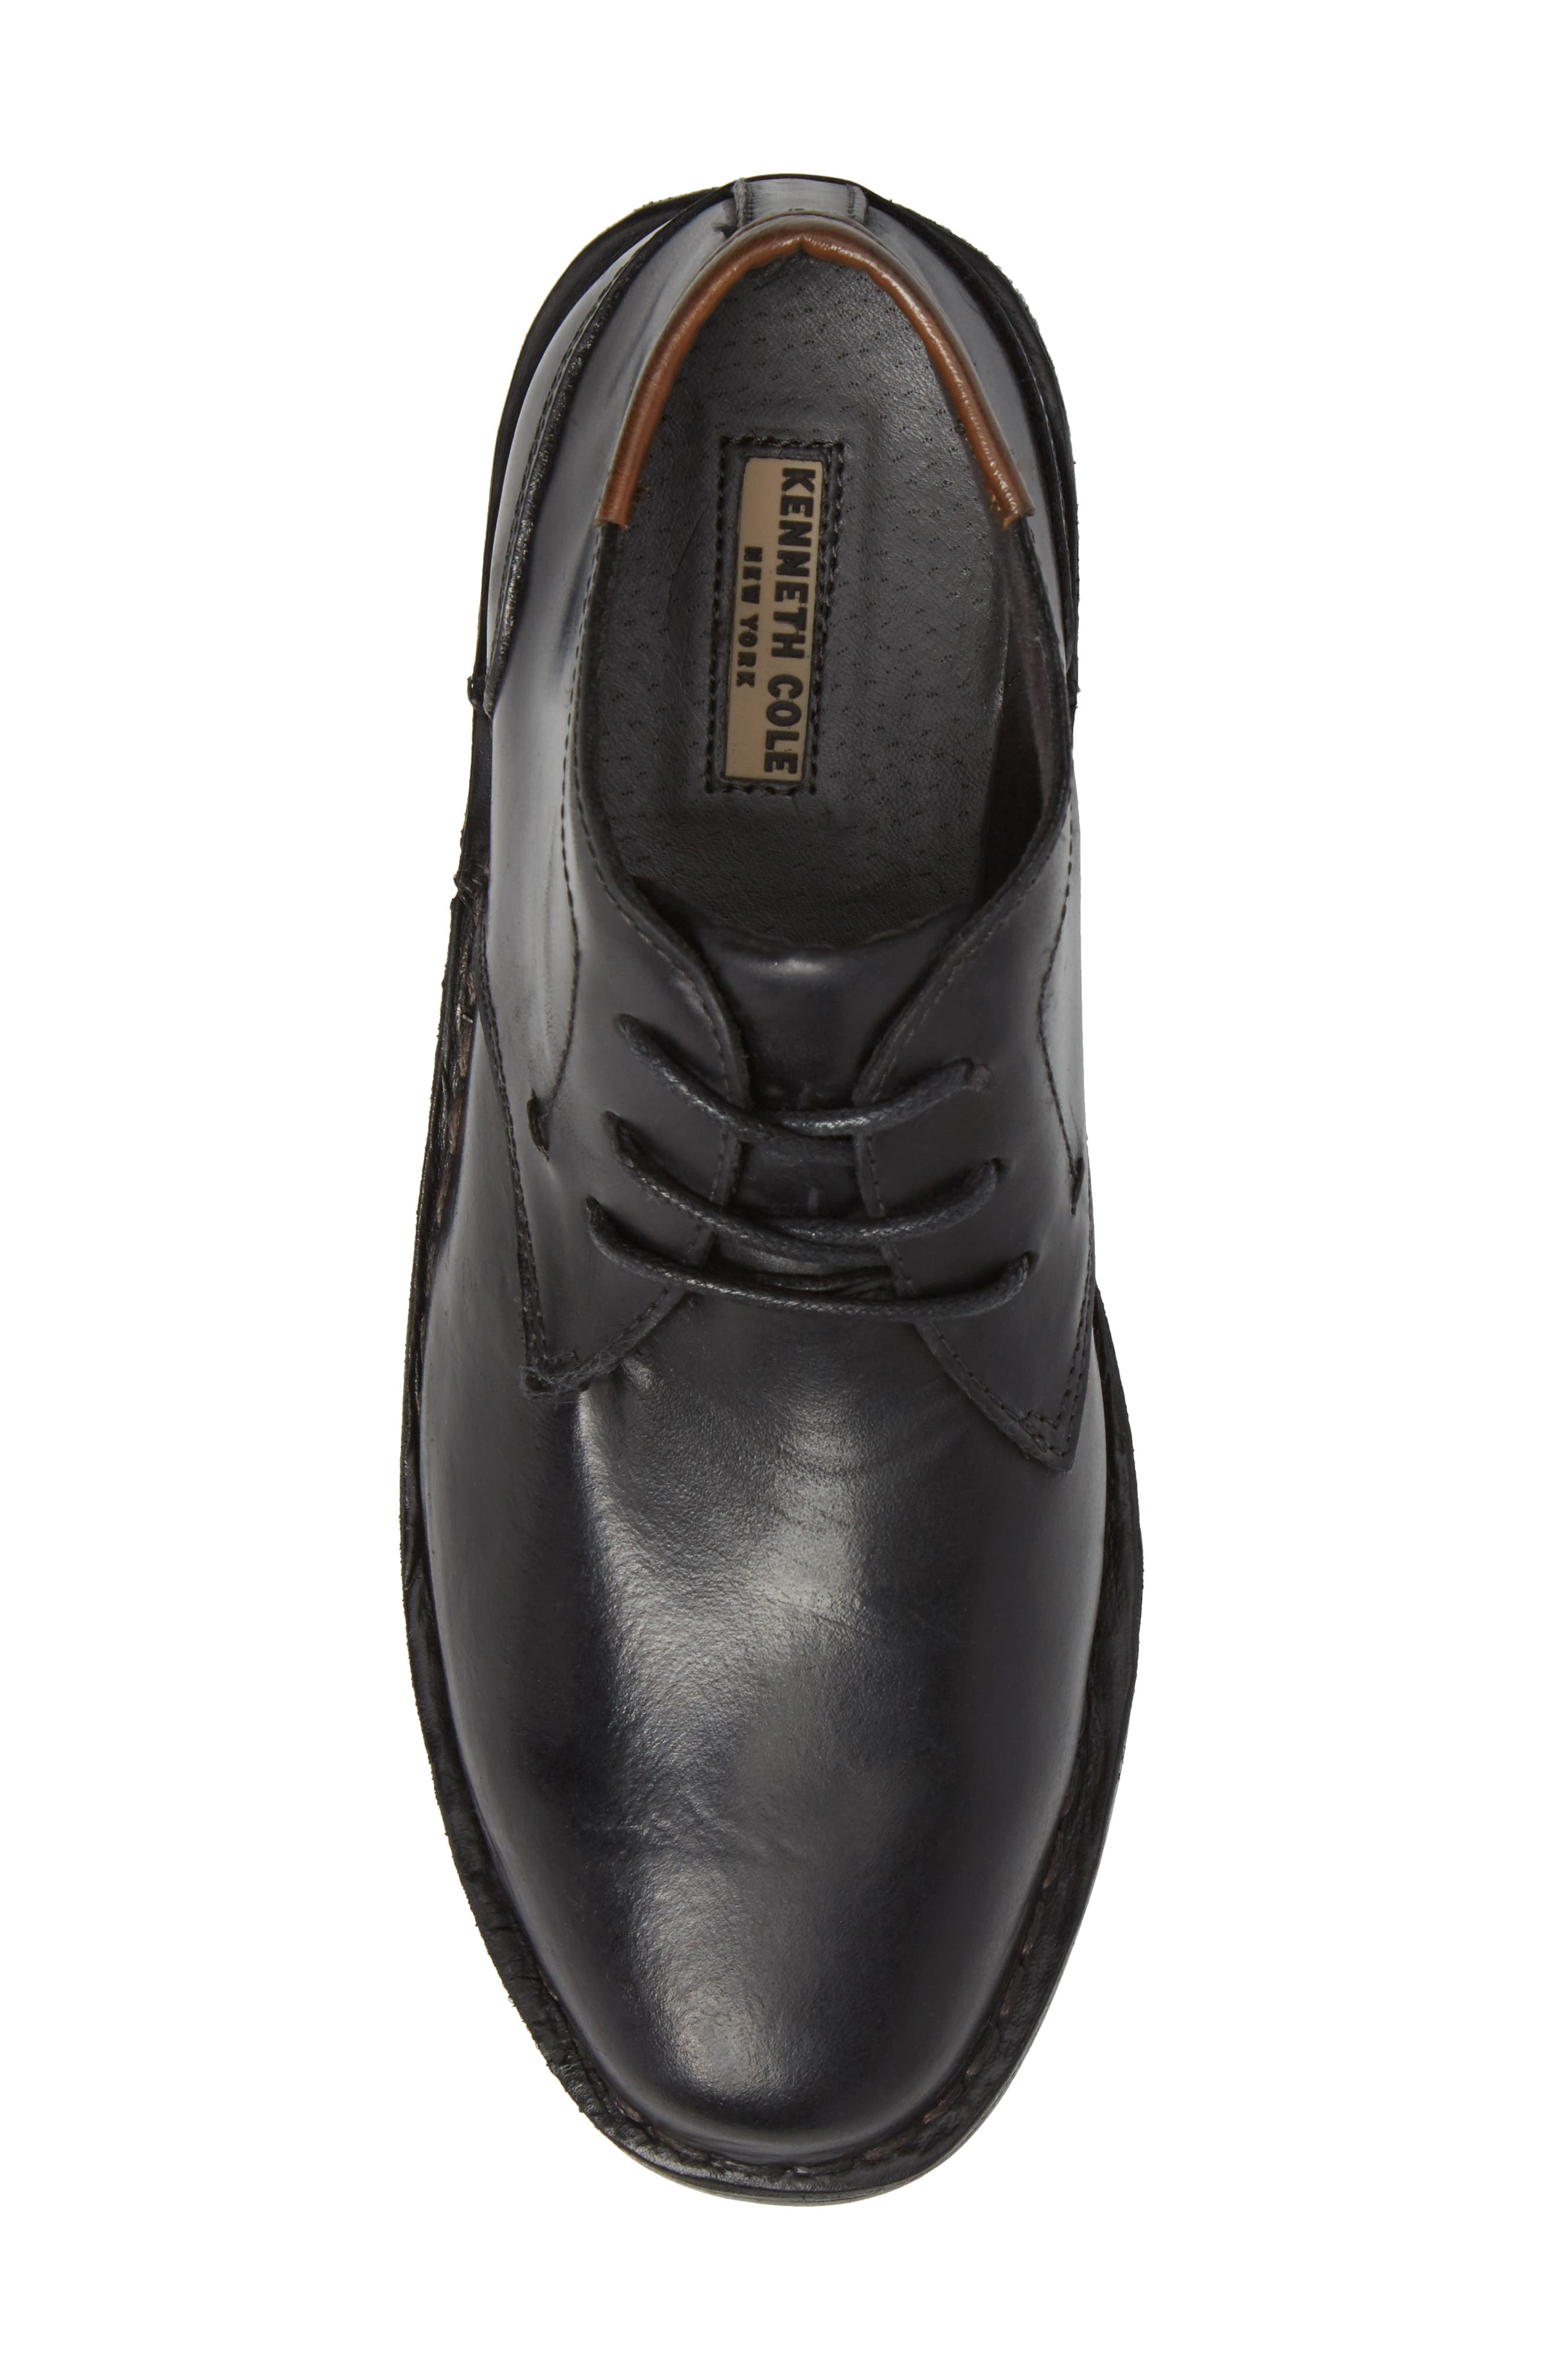 KENNETH COLE NEW YORK, Real Deal Chukka Boot, Alternate thumbnail 5, color, BLACK LEATHER